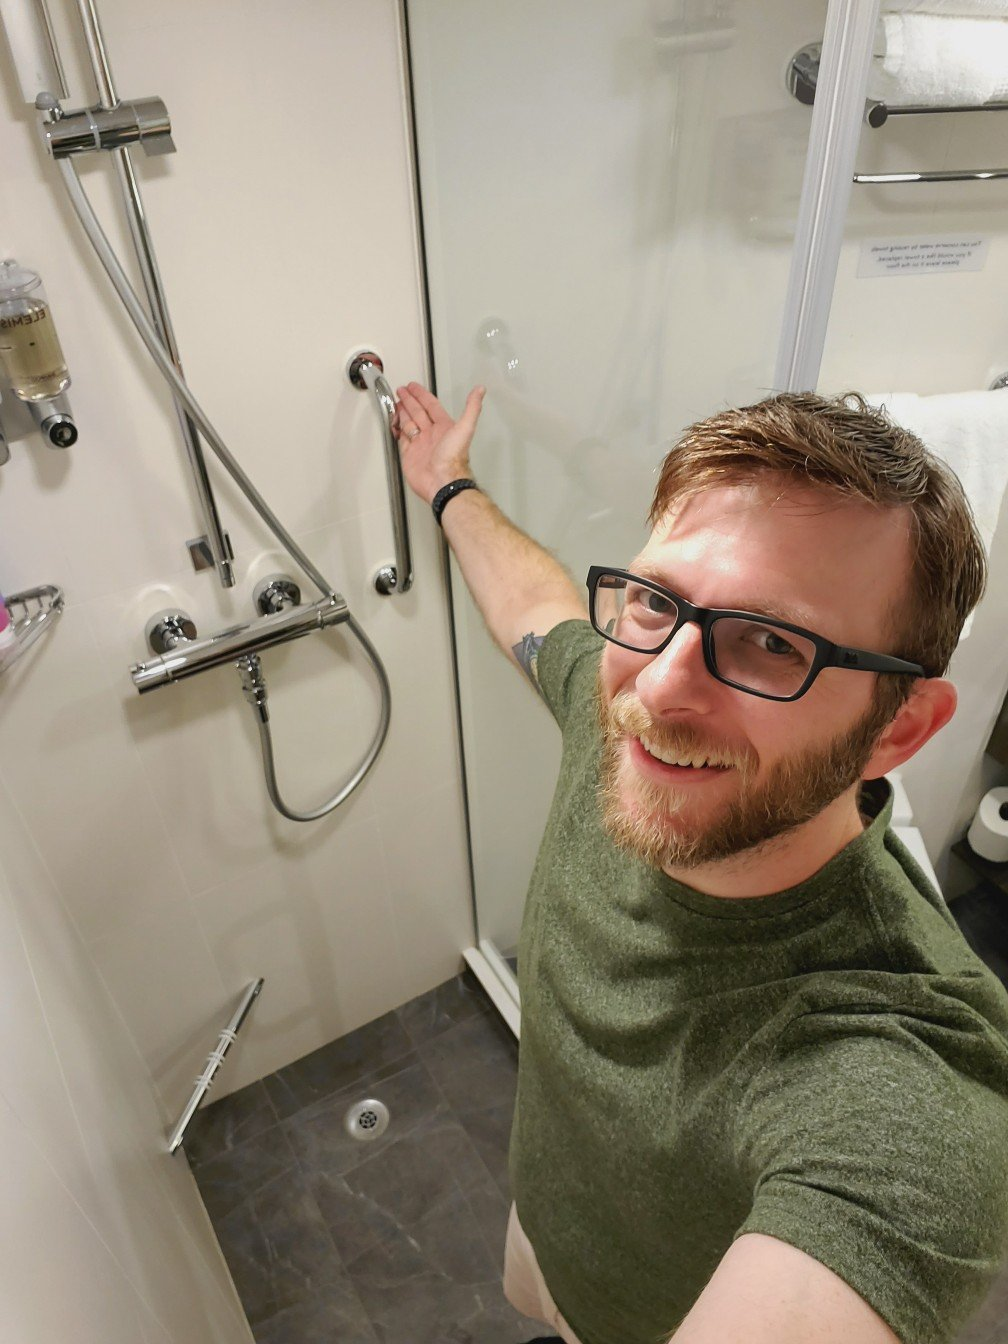 Reaching Across a the Shower - Very Large Showers in Standard Staterooms on Nieuw Statendam